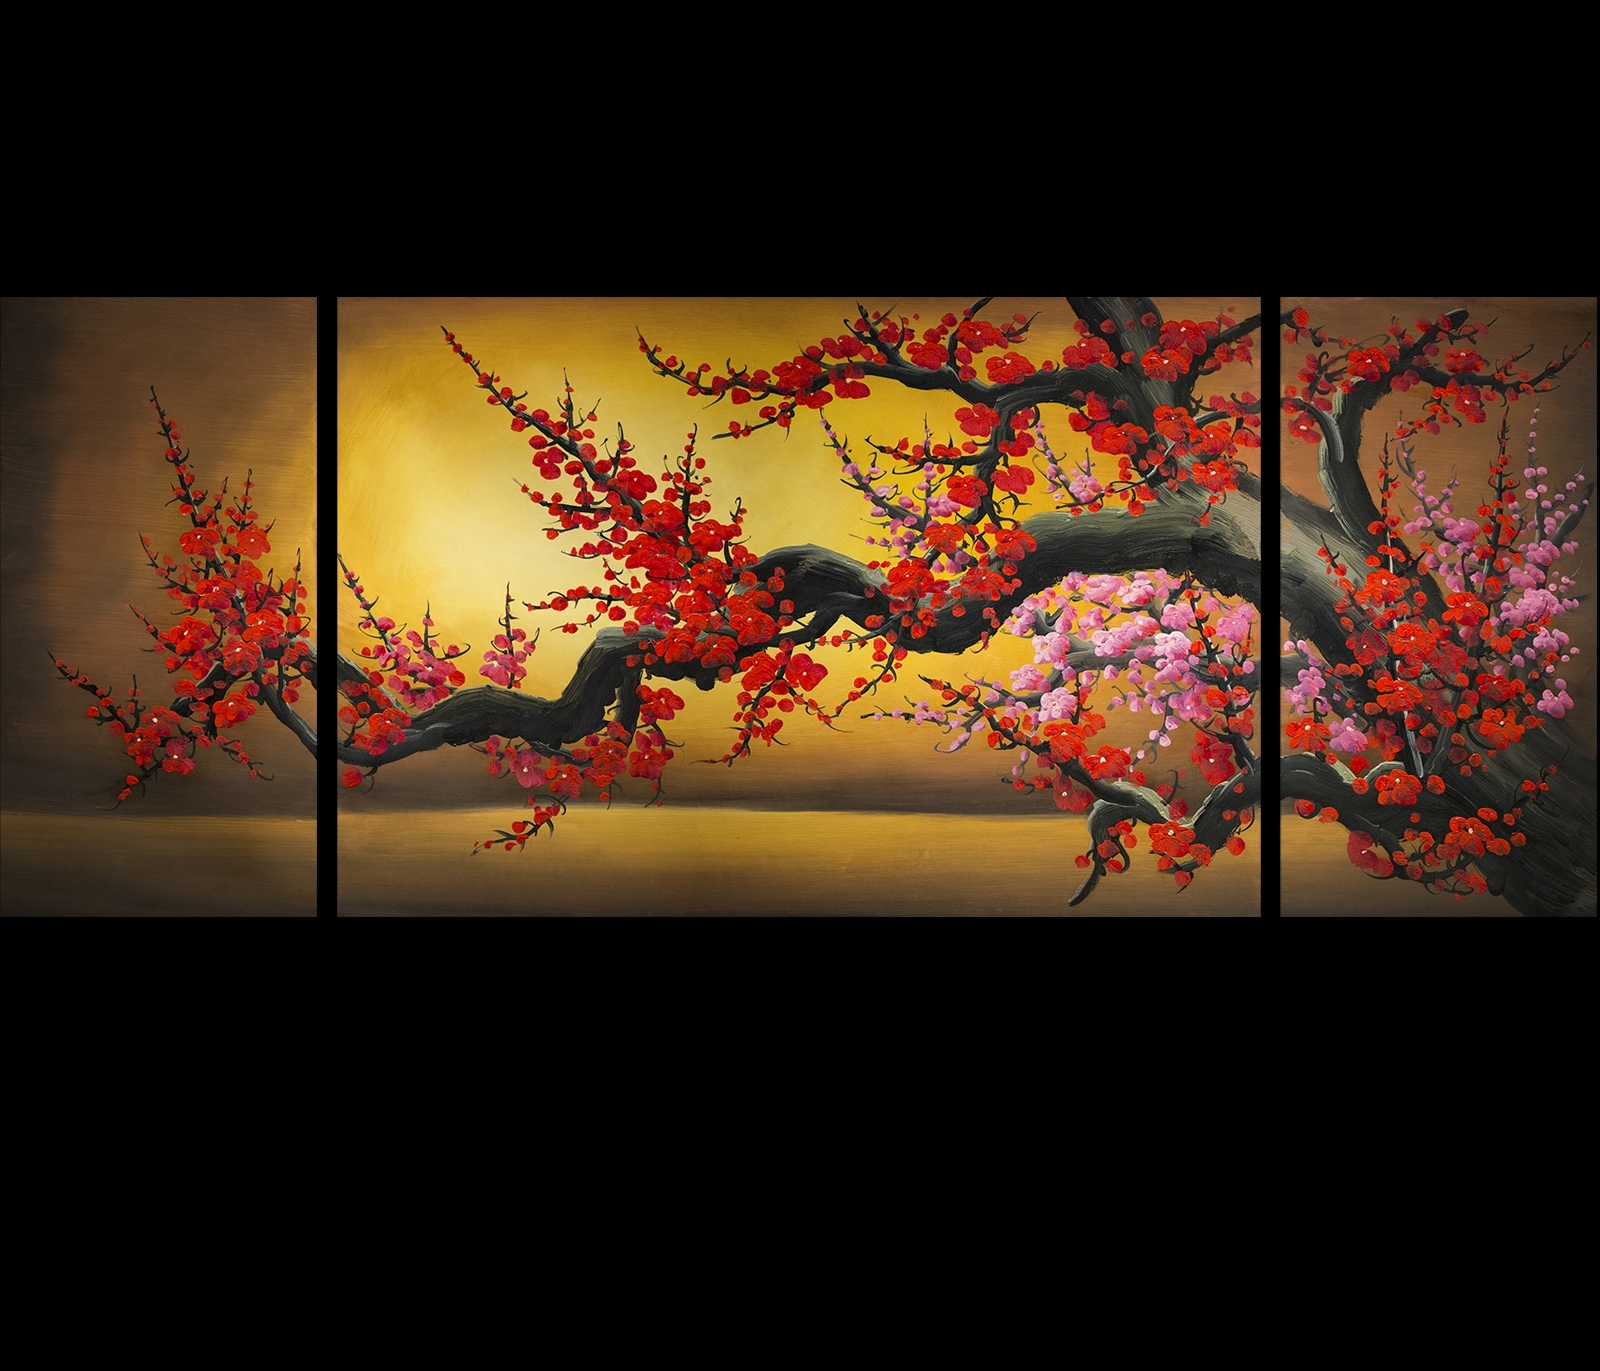 Chinese Cherry Blossom Painting Original Modern Abstract Art With Regard To Most Recently Released Abstract Cherry Blossom Wall Art (View 6 of 20)